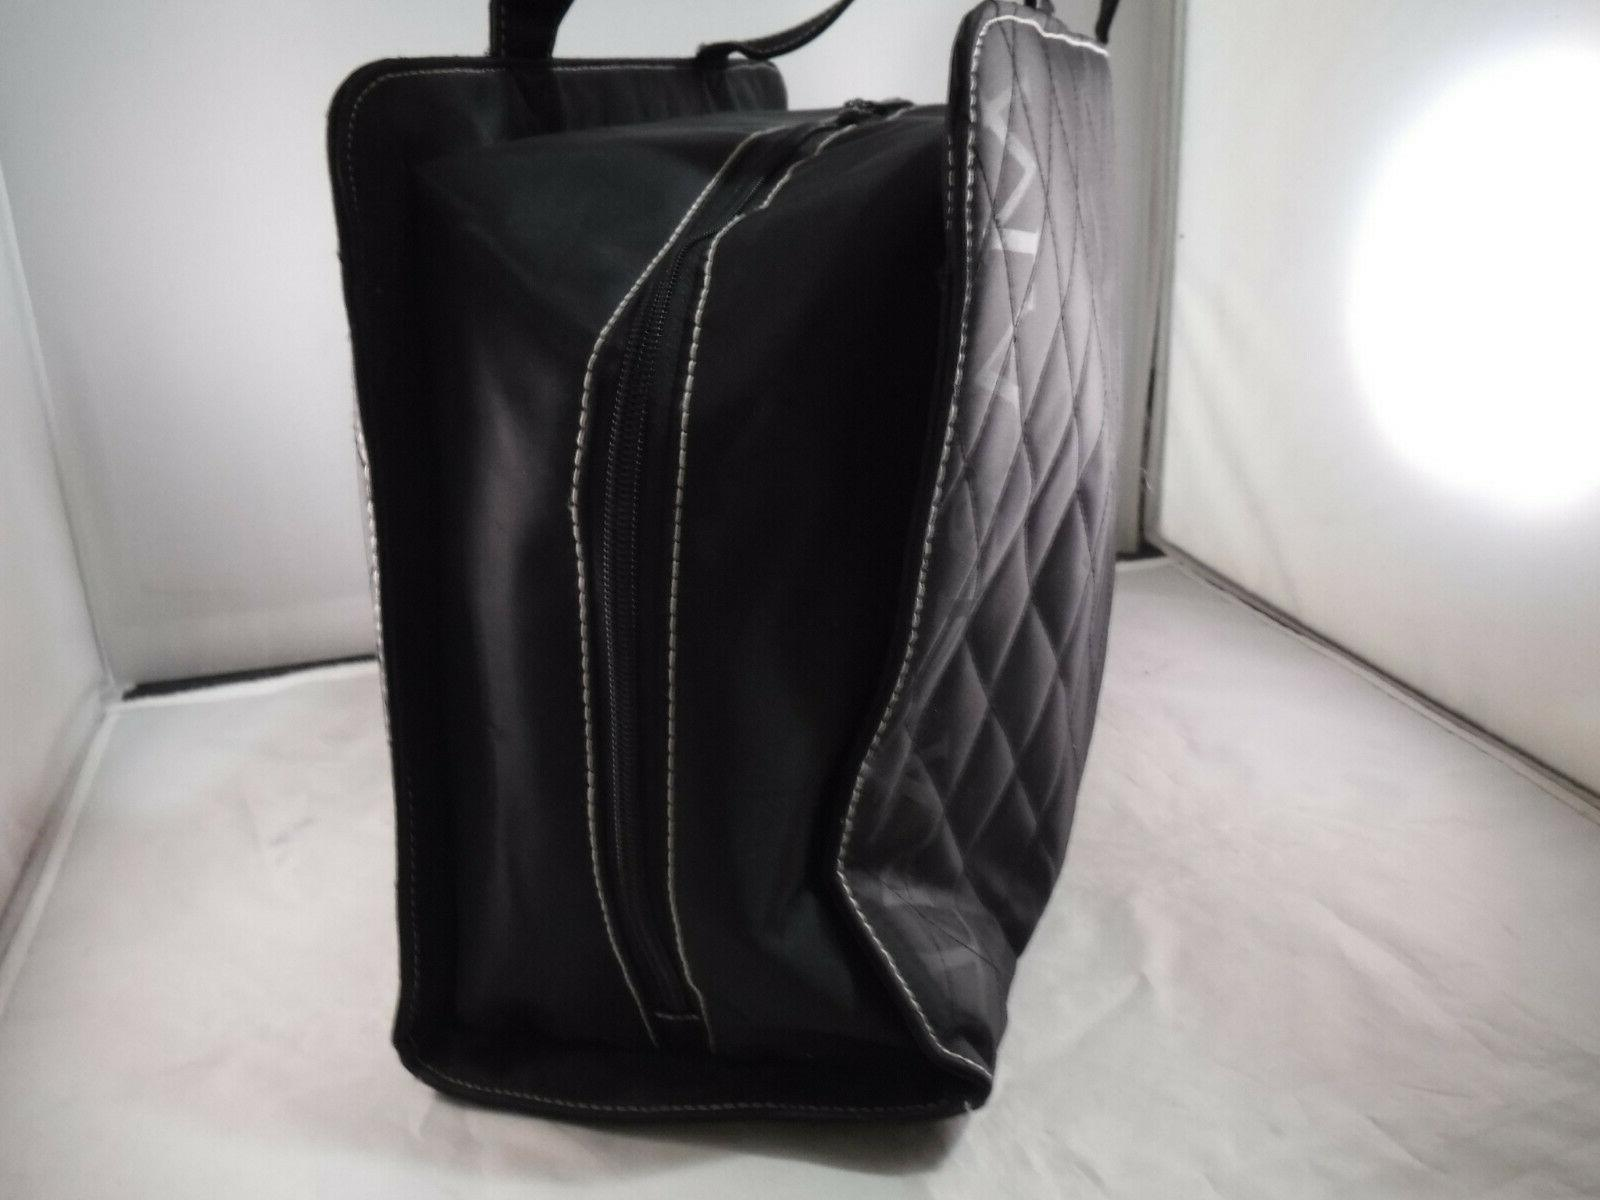 NWOT Kay Consultant Quilted